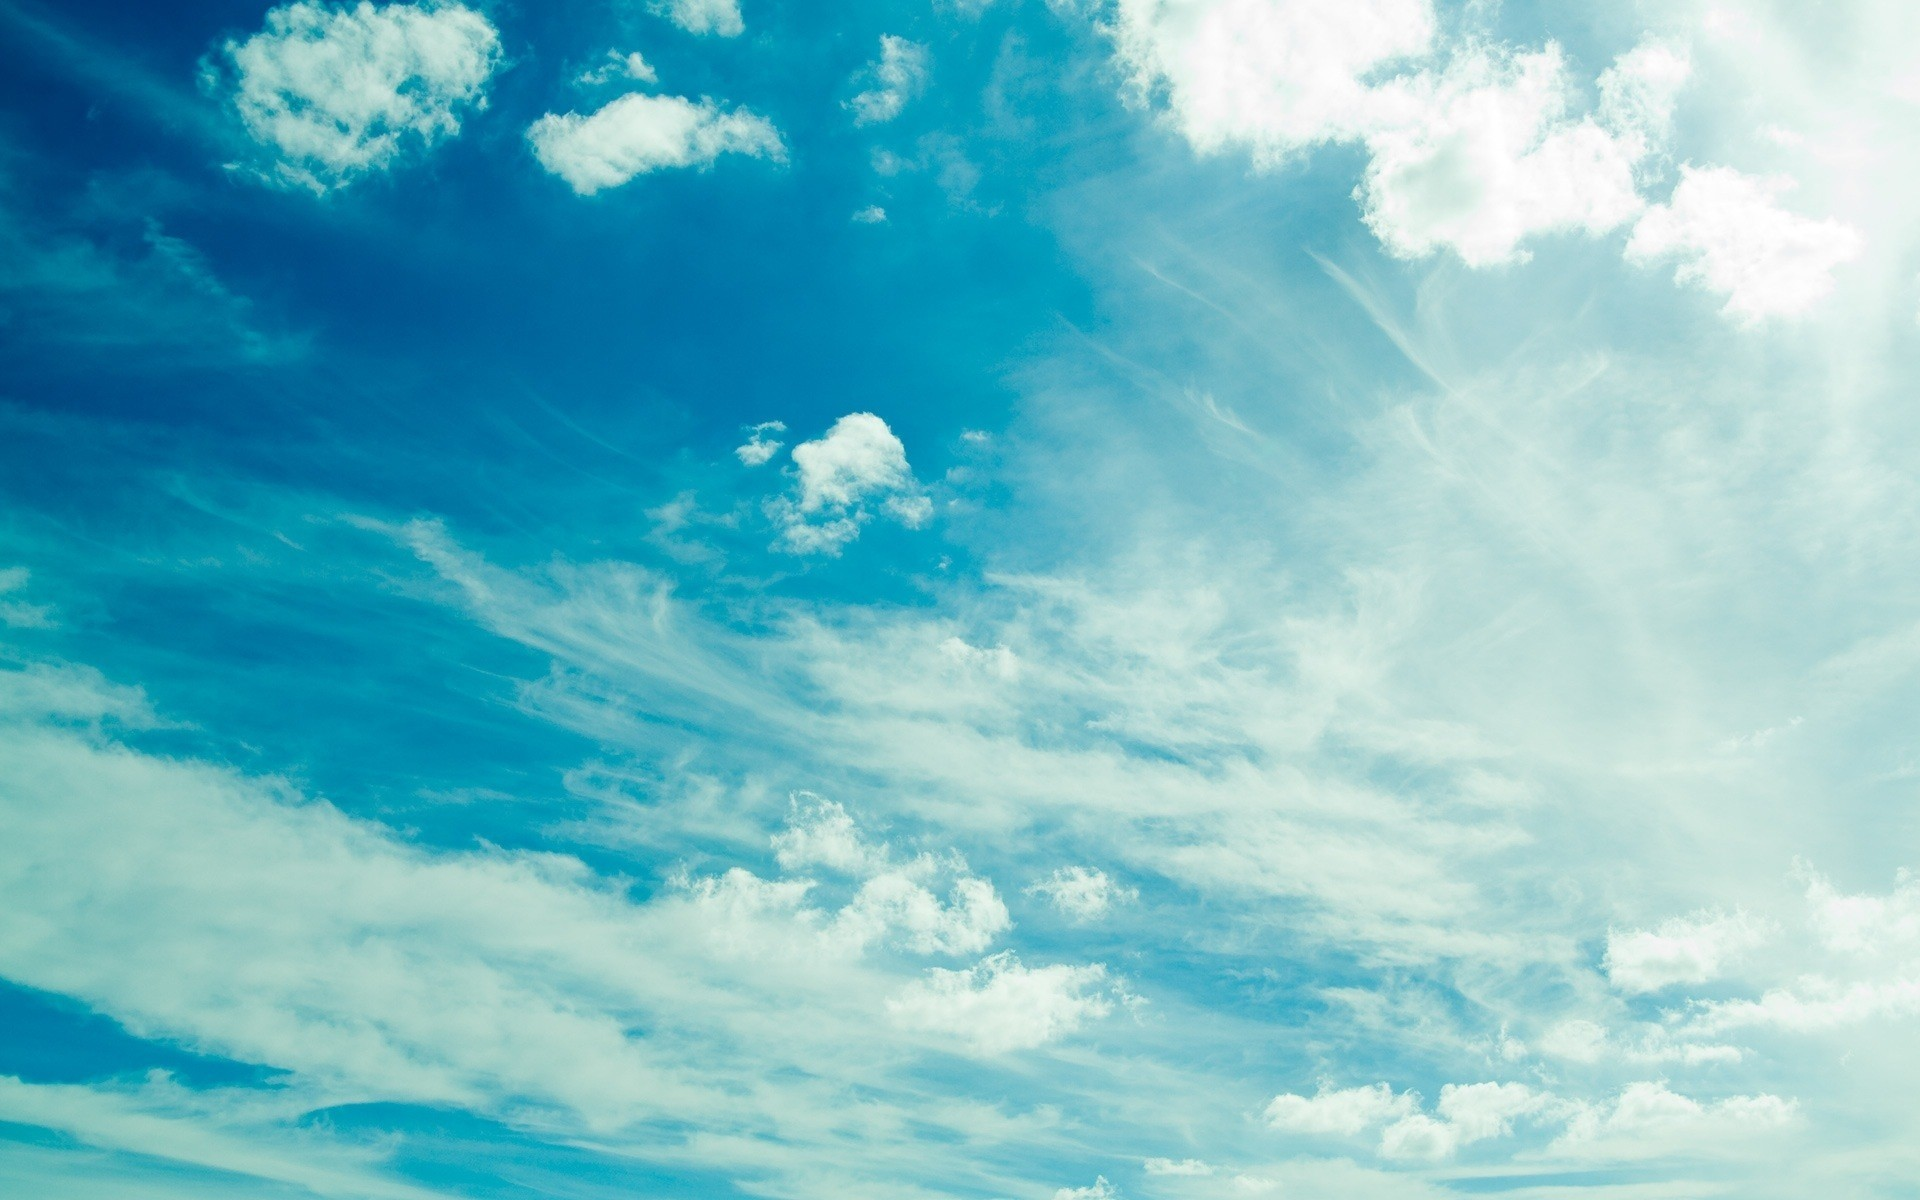 1920x1200 Cloudy Sky Desktop Wallpaper. - Cloudy Sky Background PNG